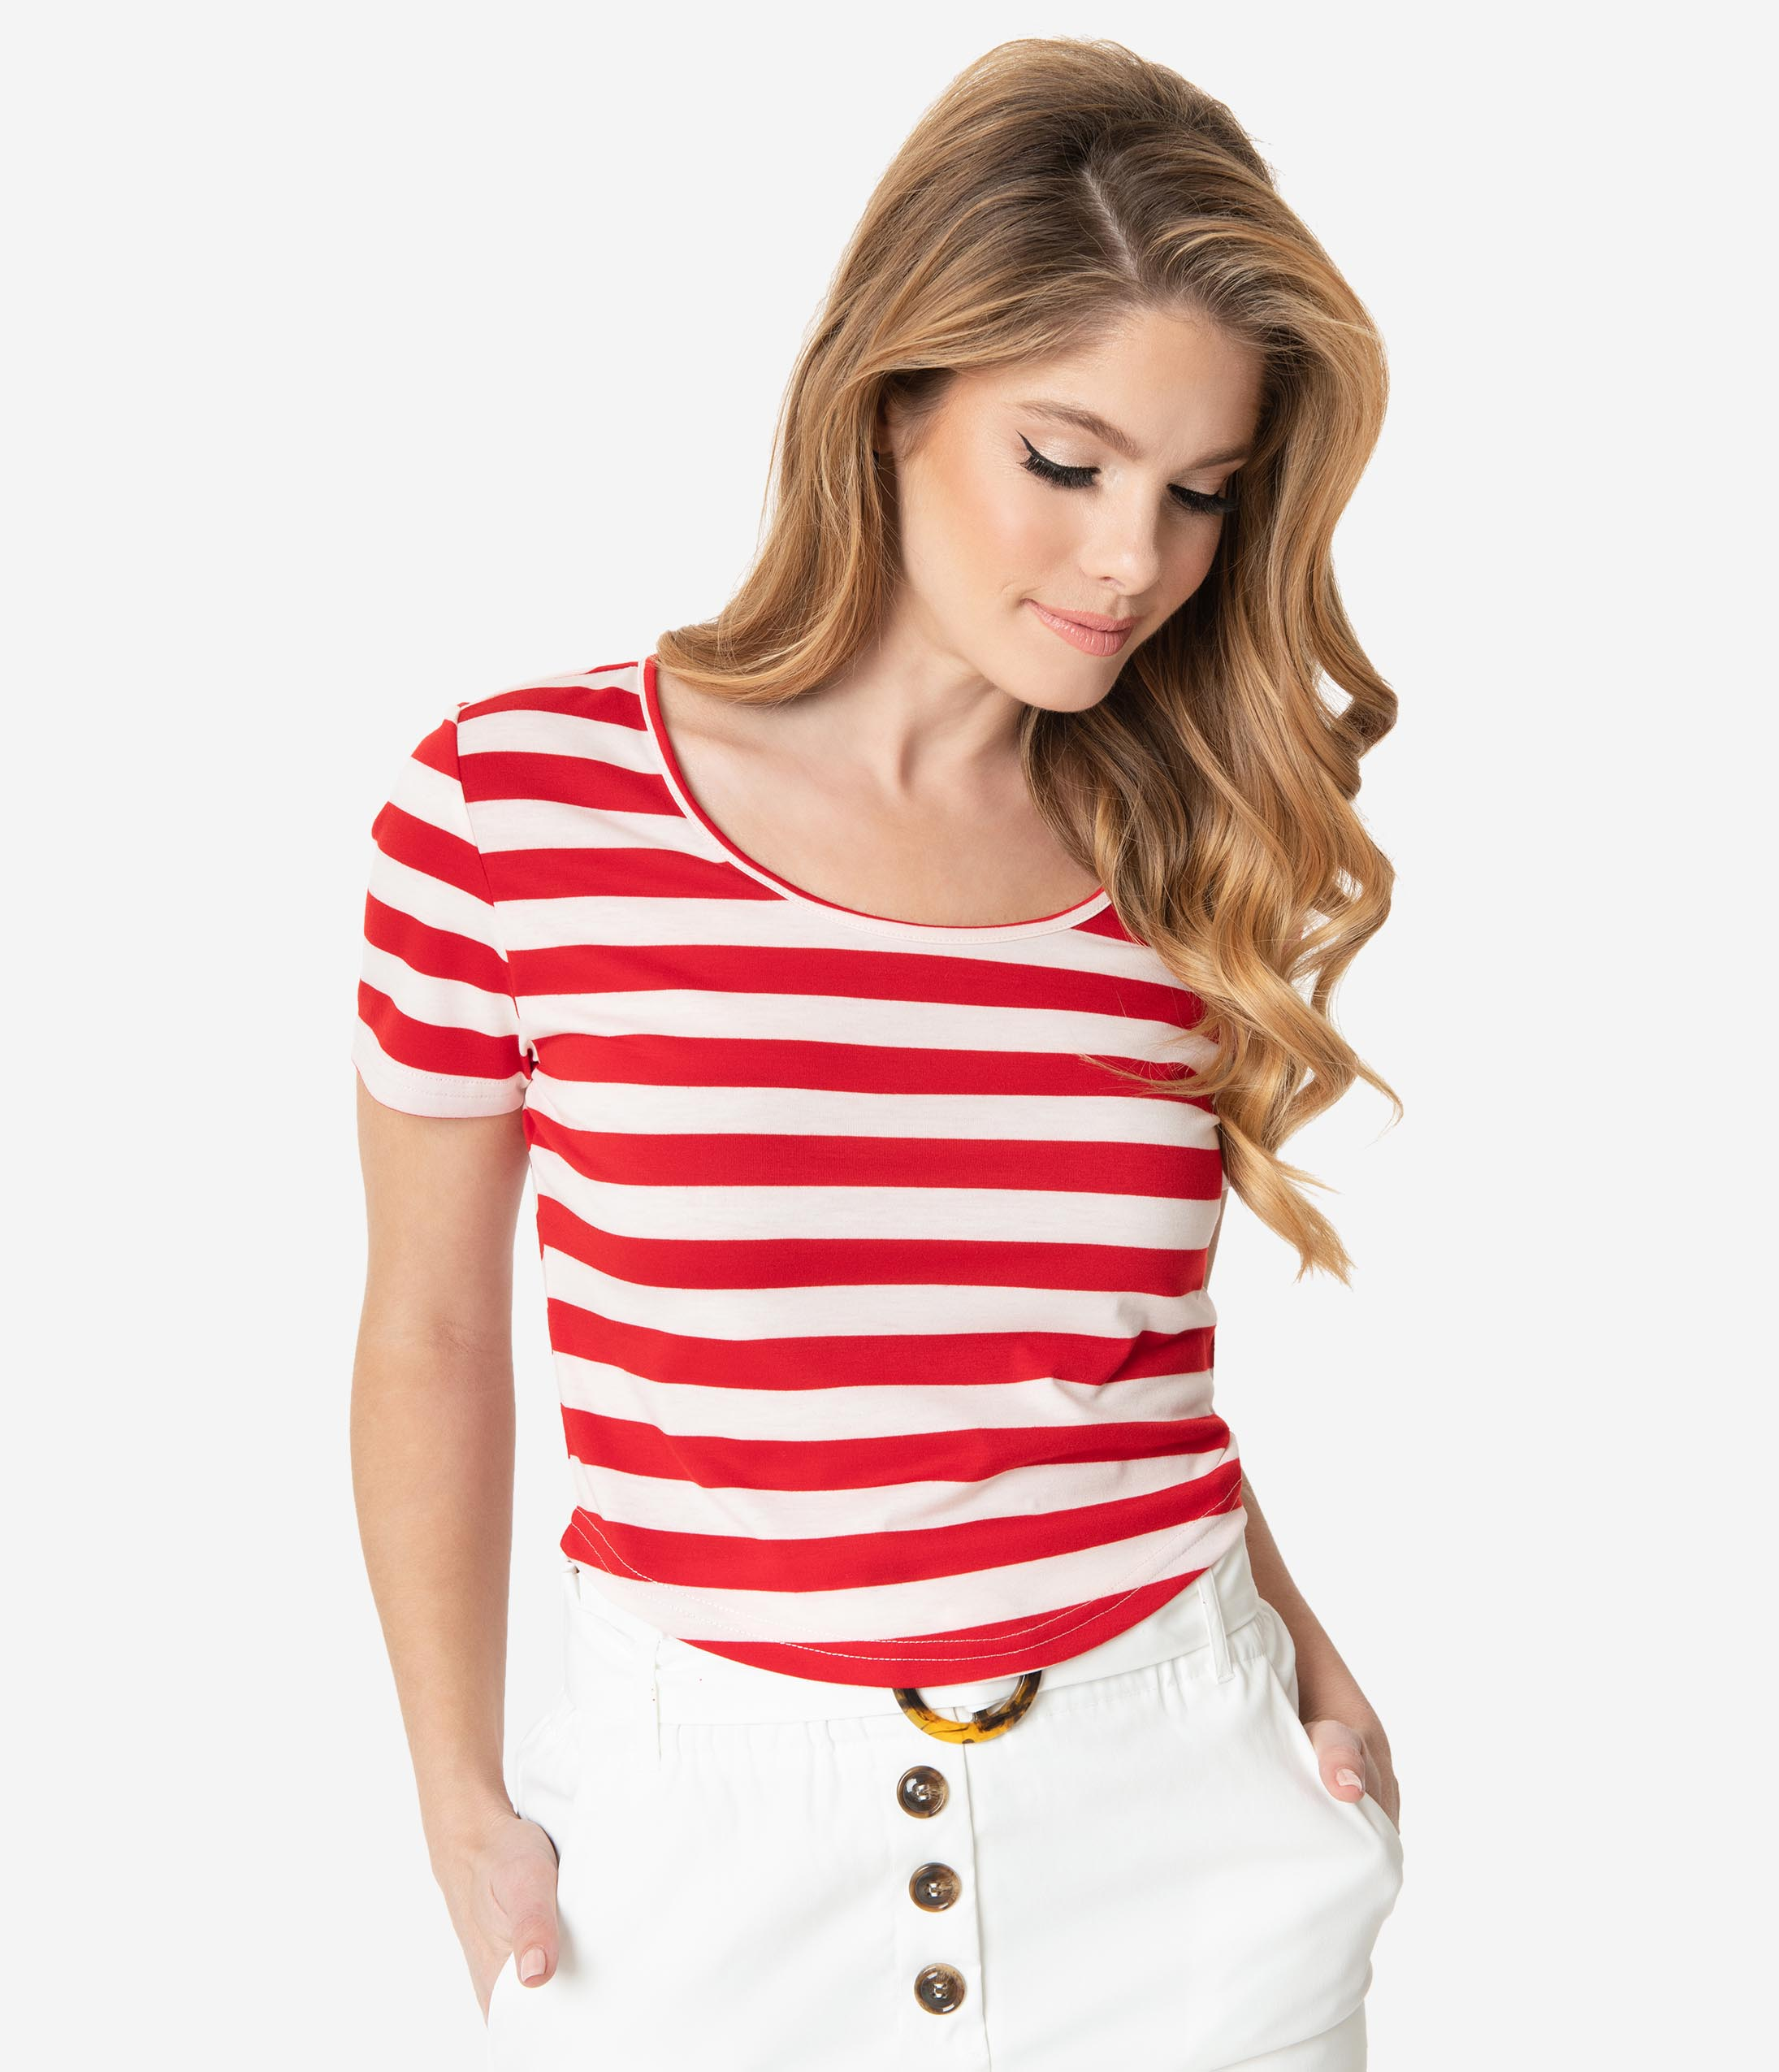 1940s Blouses and Tops Red  White Striped Short Sleeve Crop Top $36.00 AT vintagedancer.com